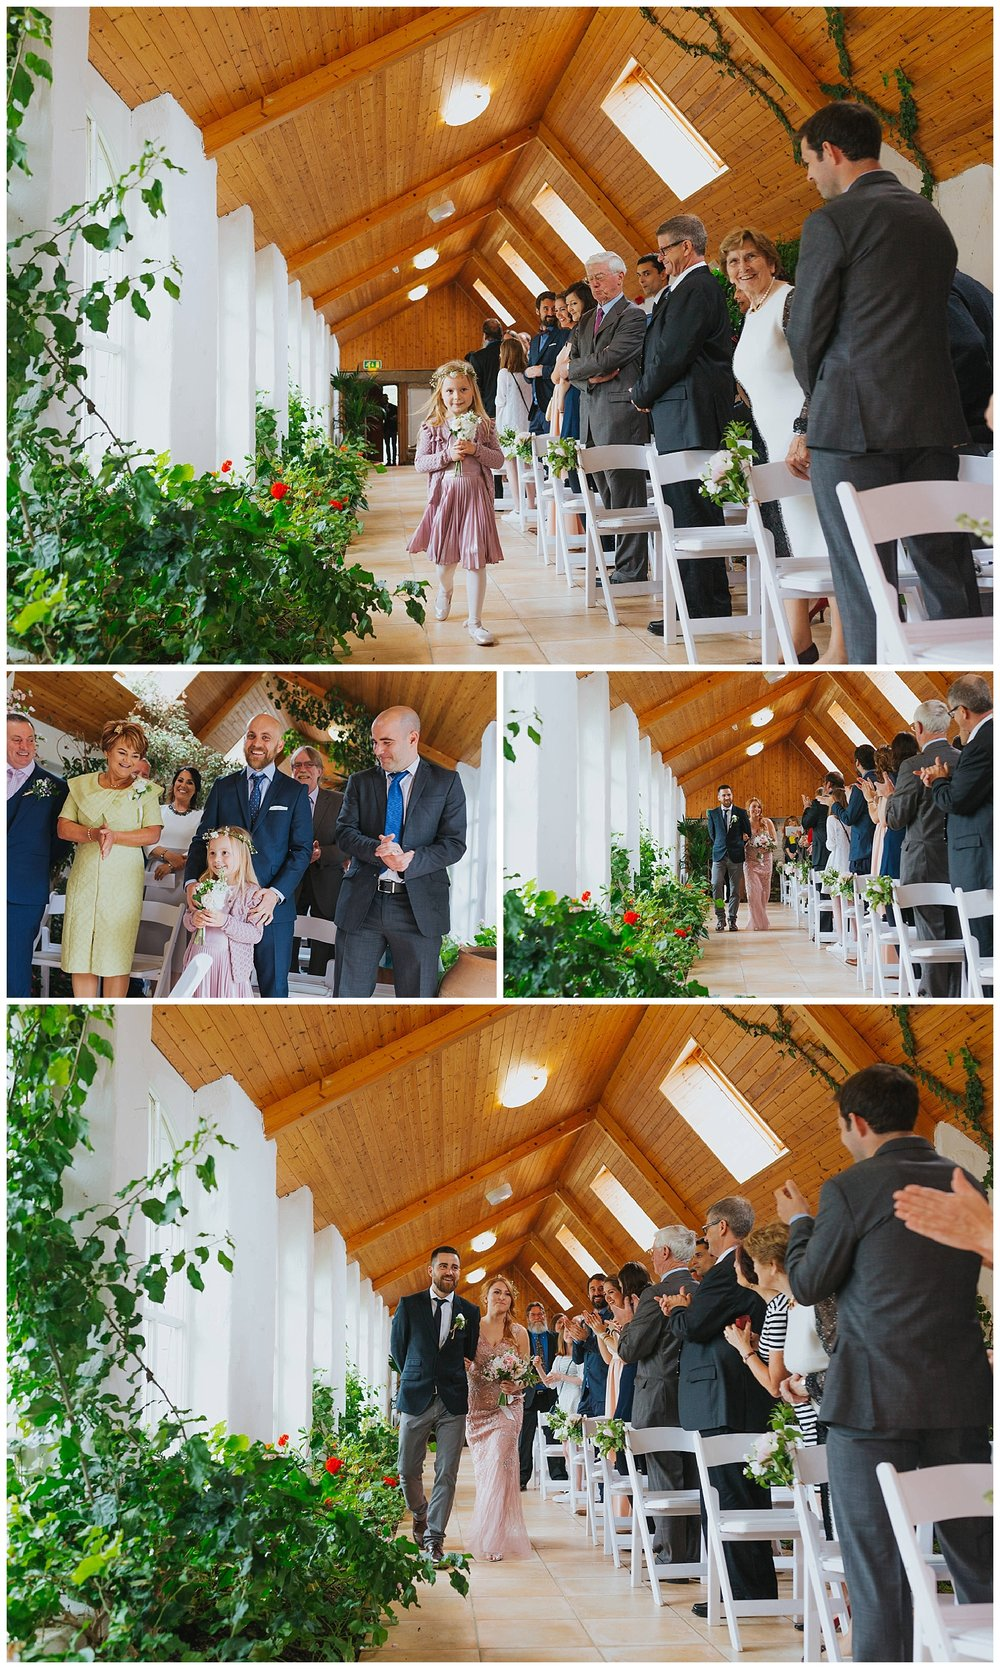 p+g_rathsallagh_house_wedding_livia_figueiredo_521.jpg